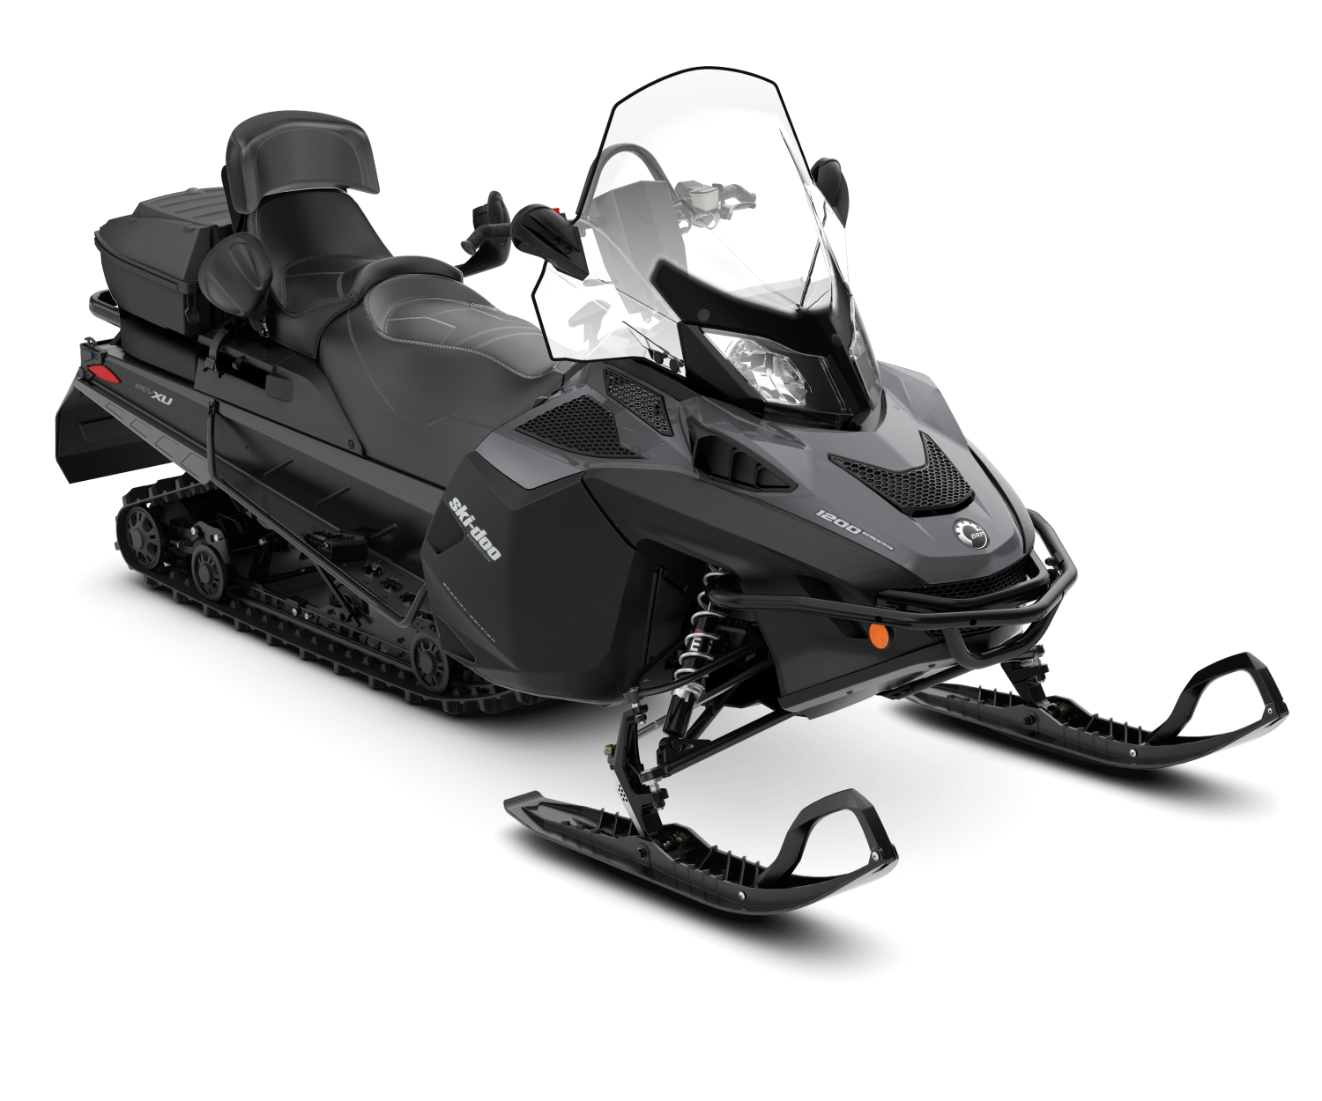 2018 Ski-Doo Expedition SE 1200 4-TEC in Yakima, Washington